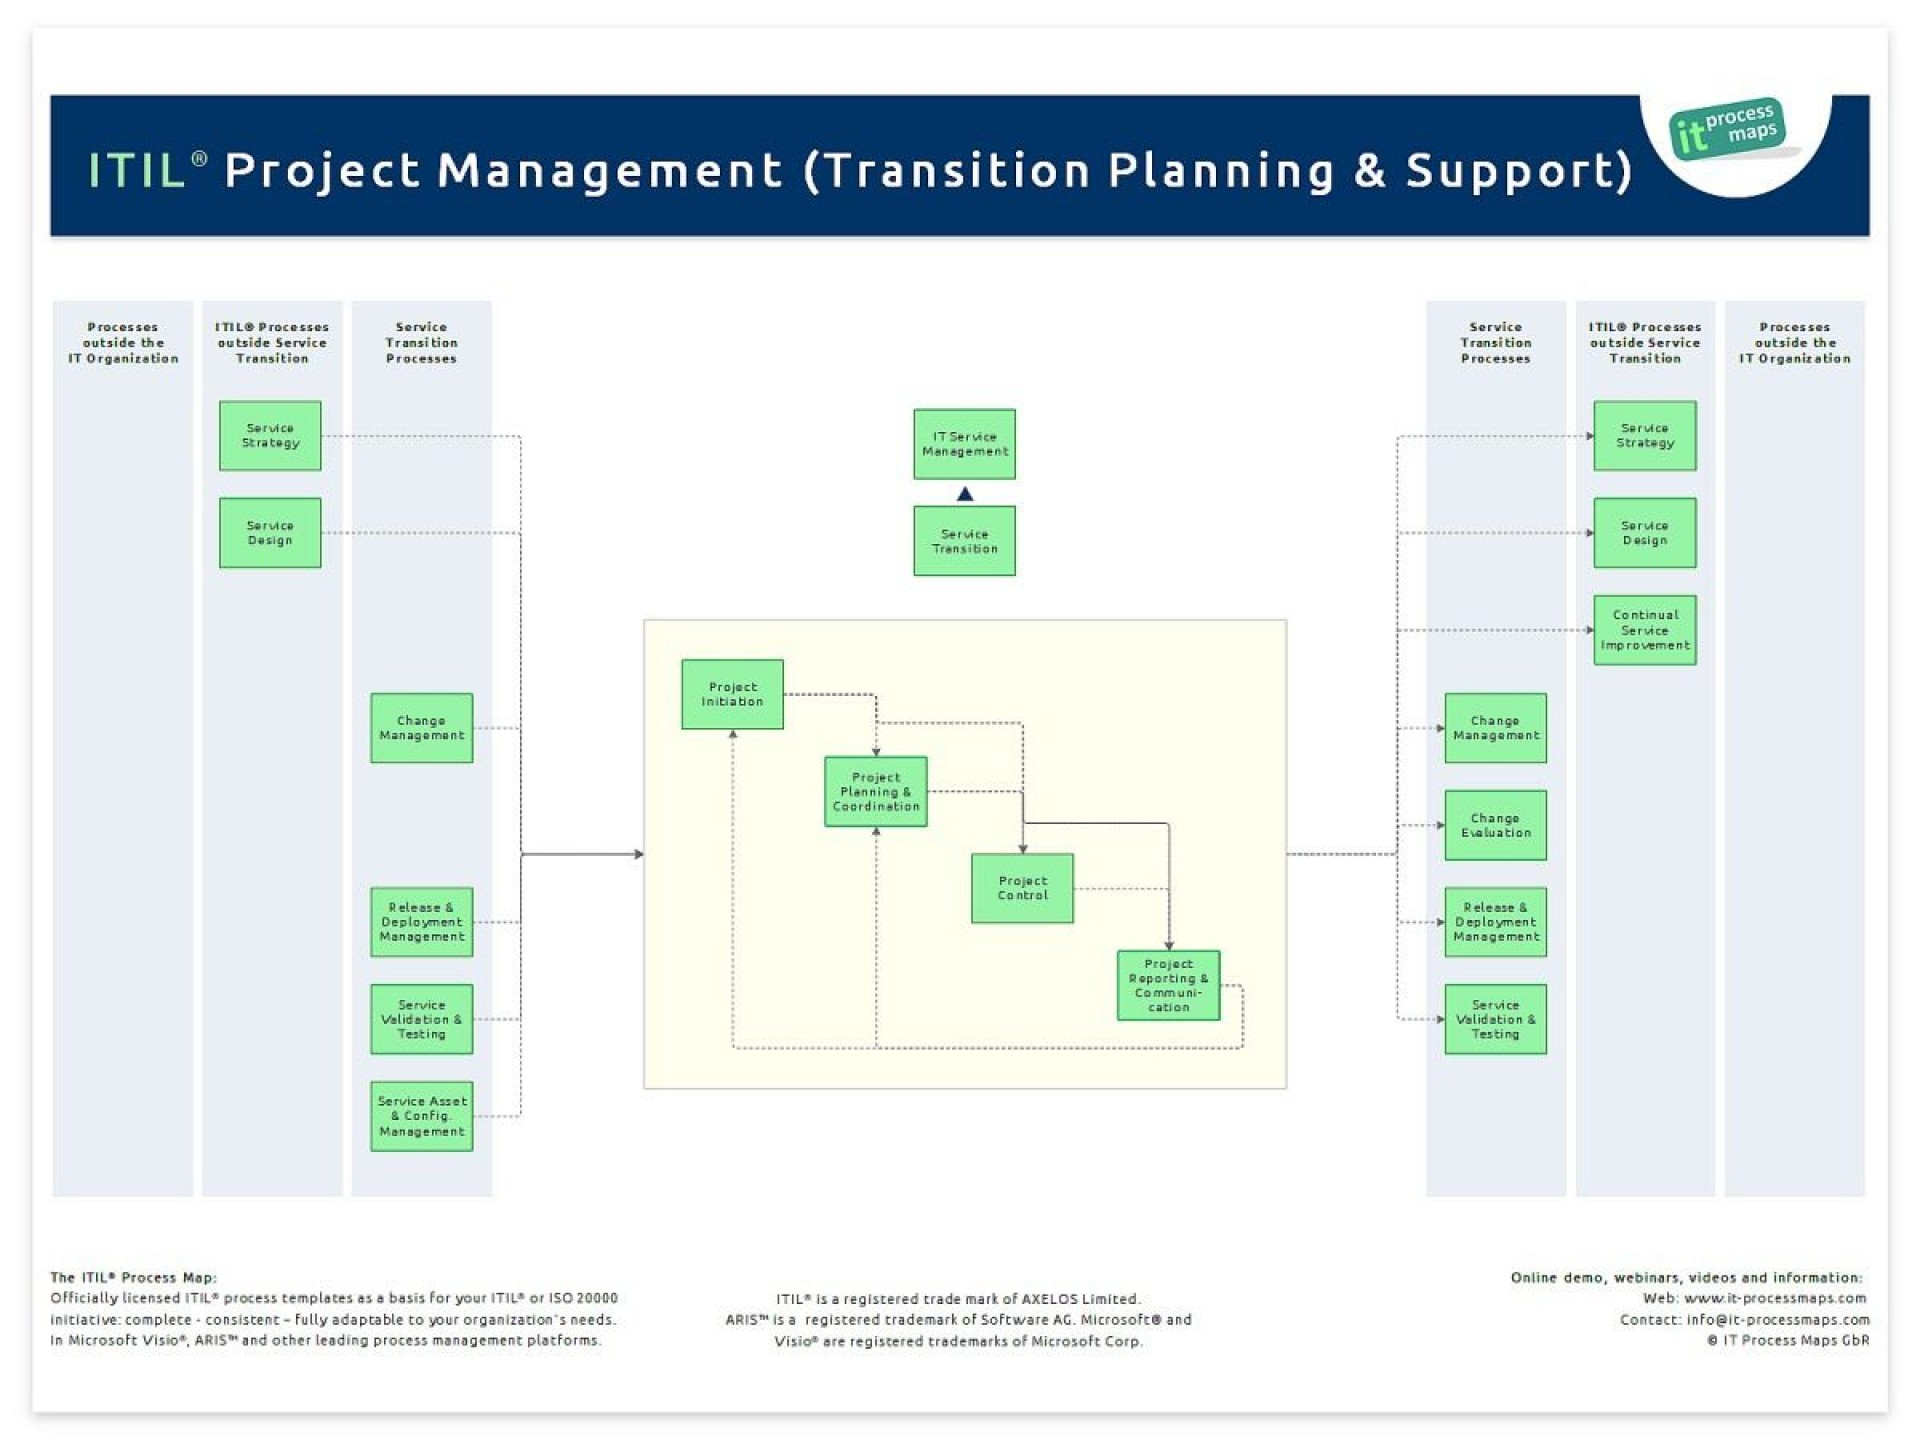 005 Impressive Project Transition Out Plan Template High Resolution  Xl Excel Download1920